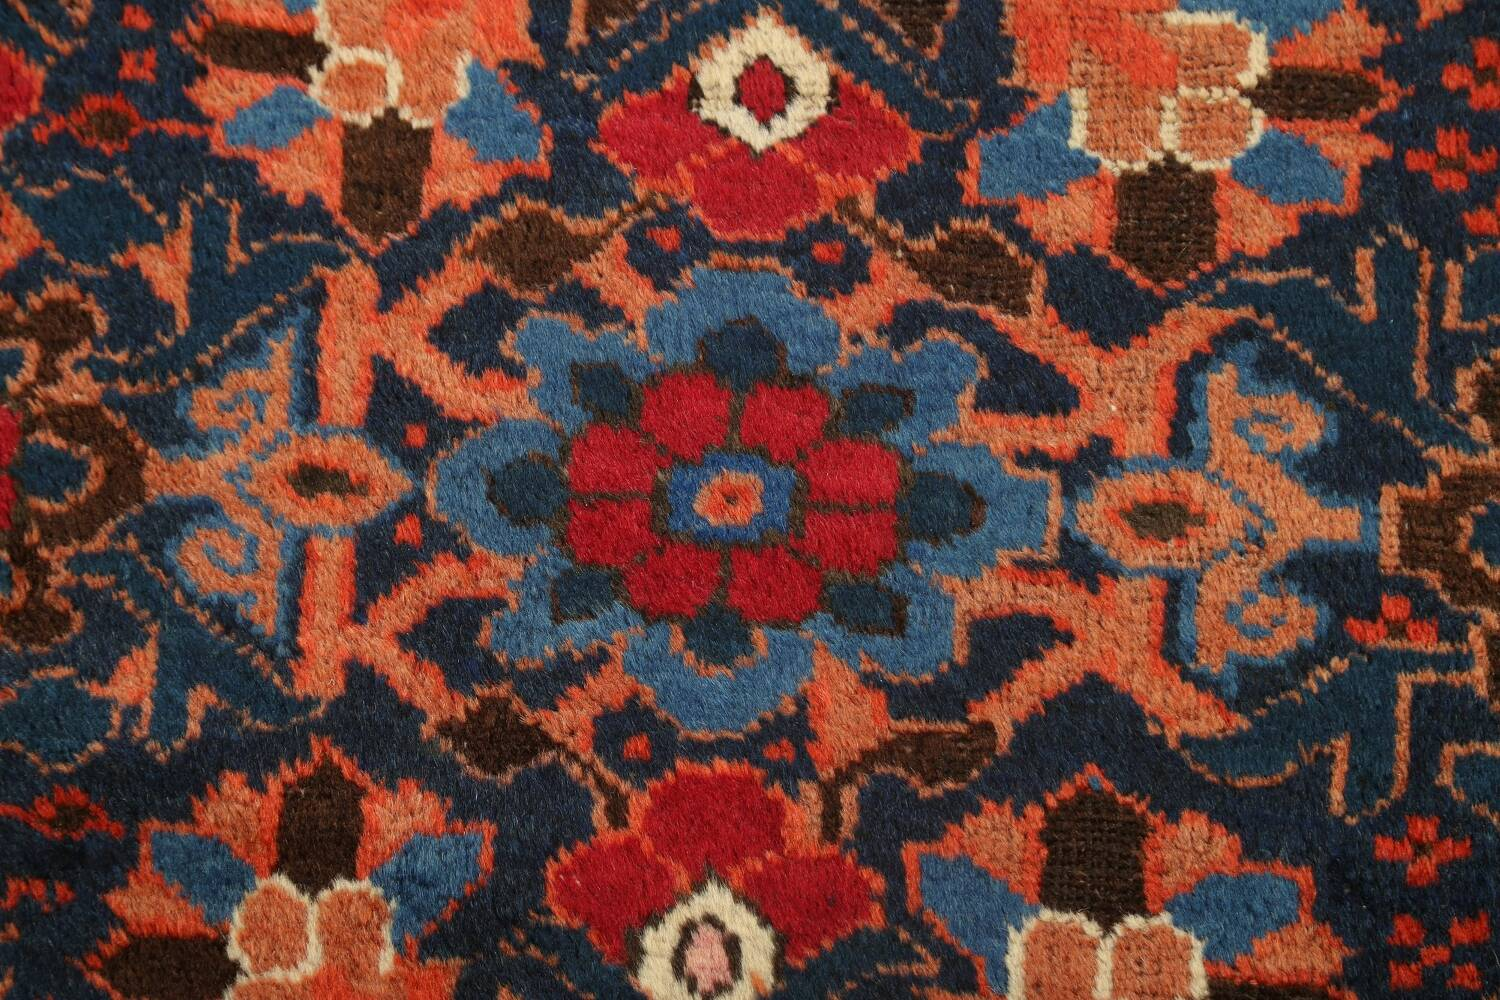 Antique 100% Vegetable Dye Malayer Persian Area Rug 4x7 image 9